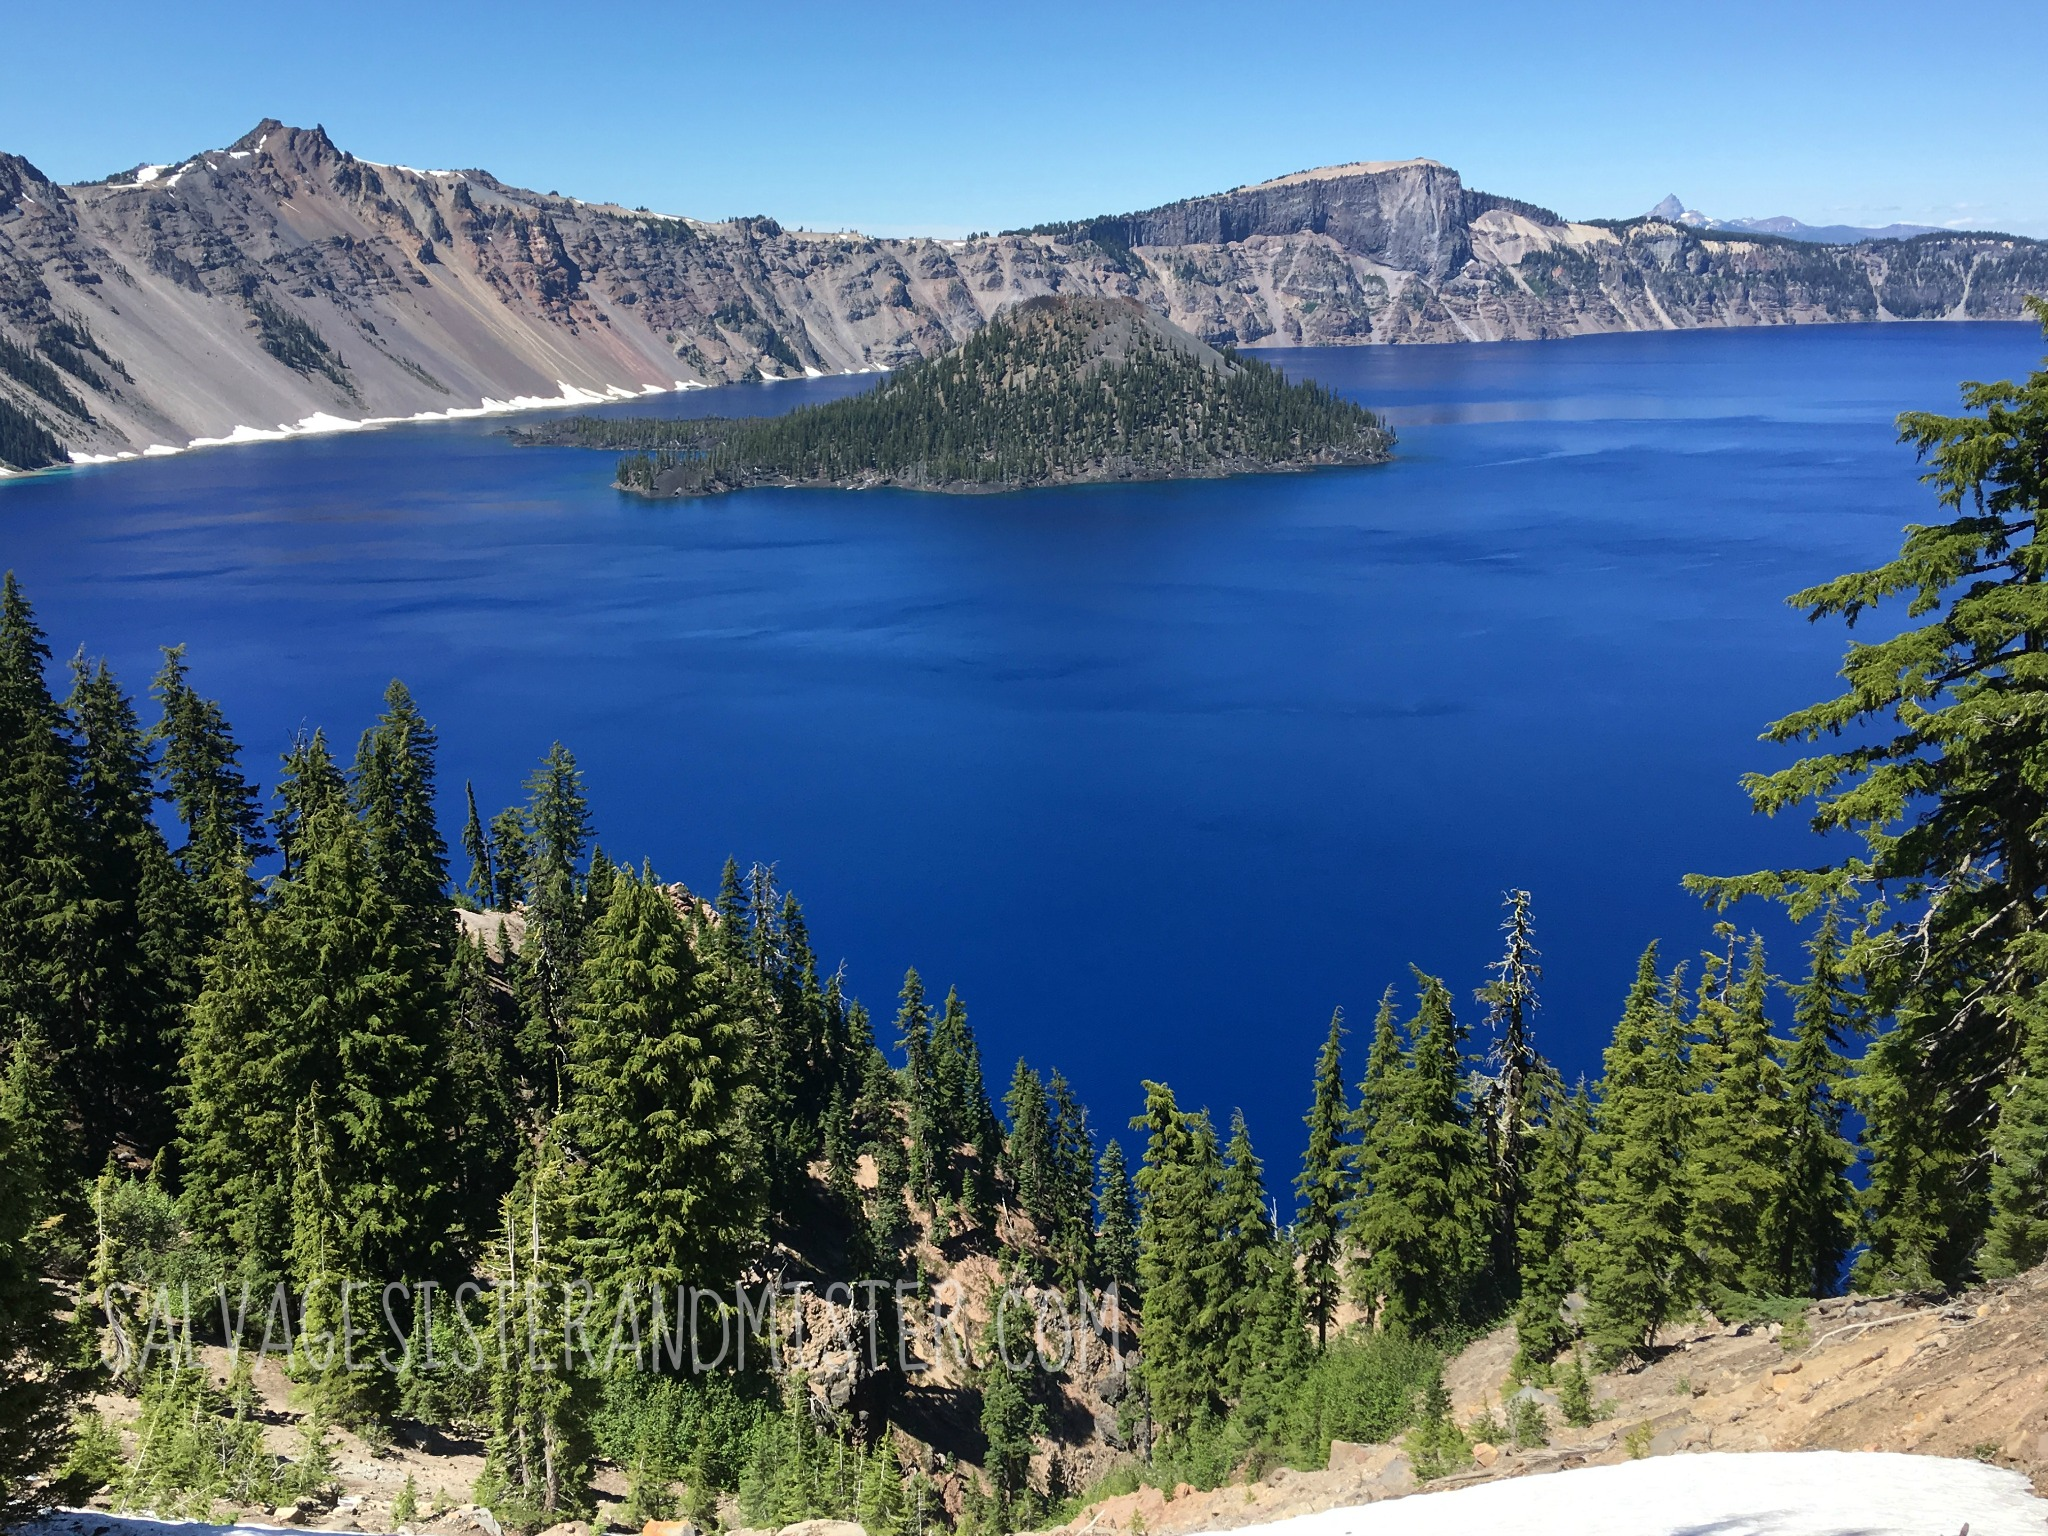 The beautiful Crater Lake in Oregon. It's a must see. Come see more about this beautiful state.